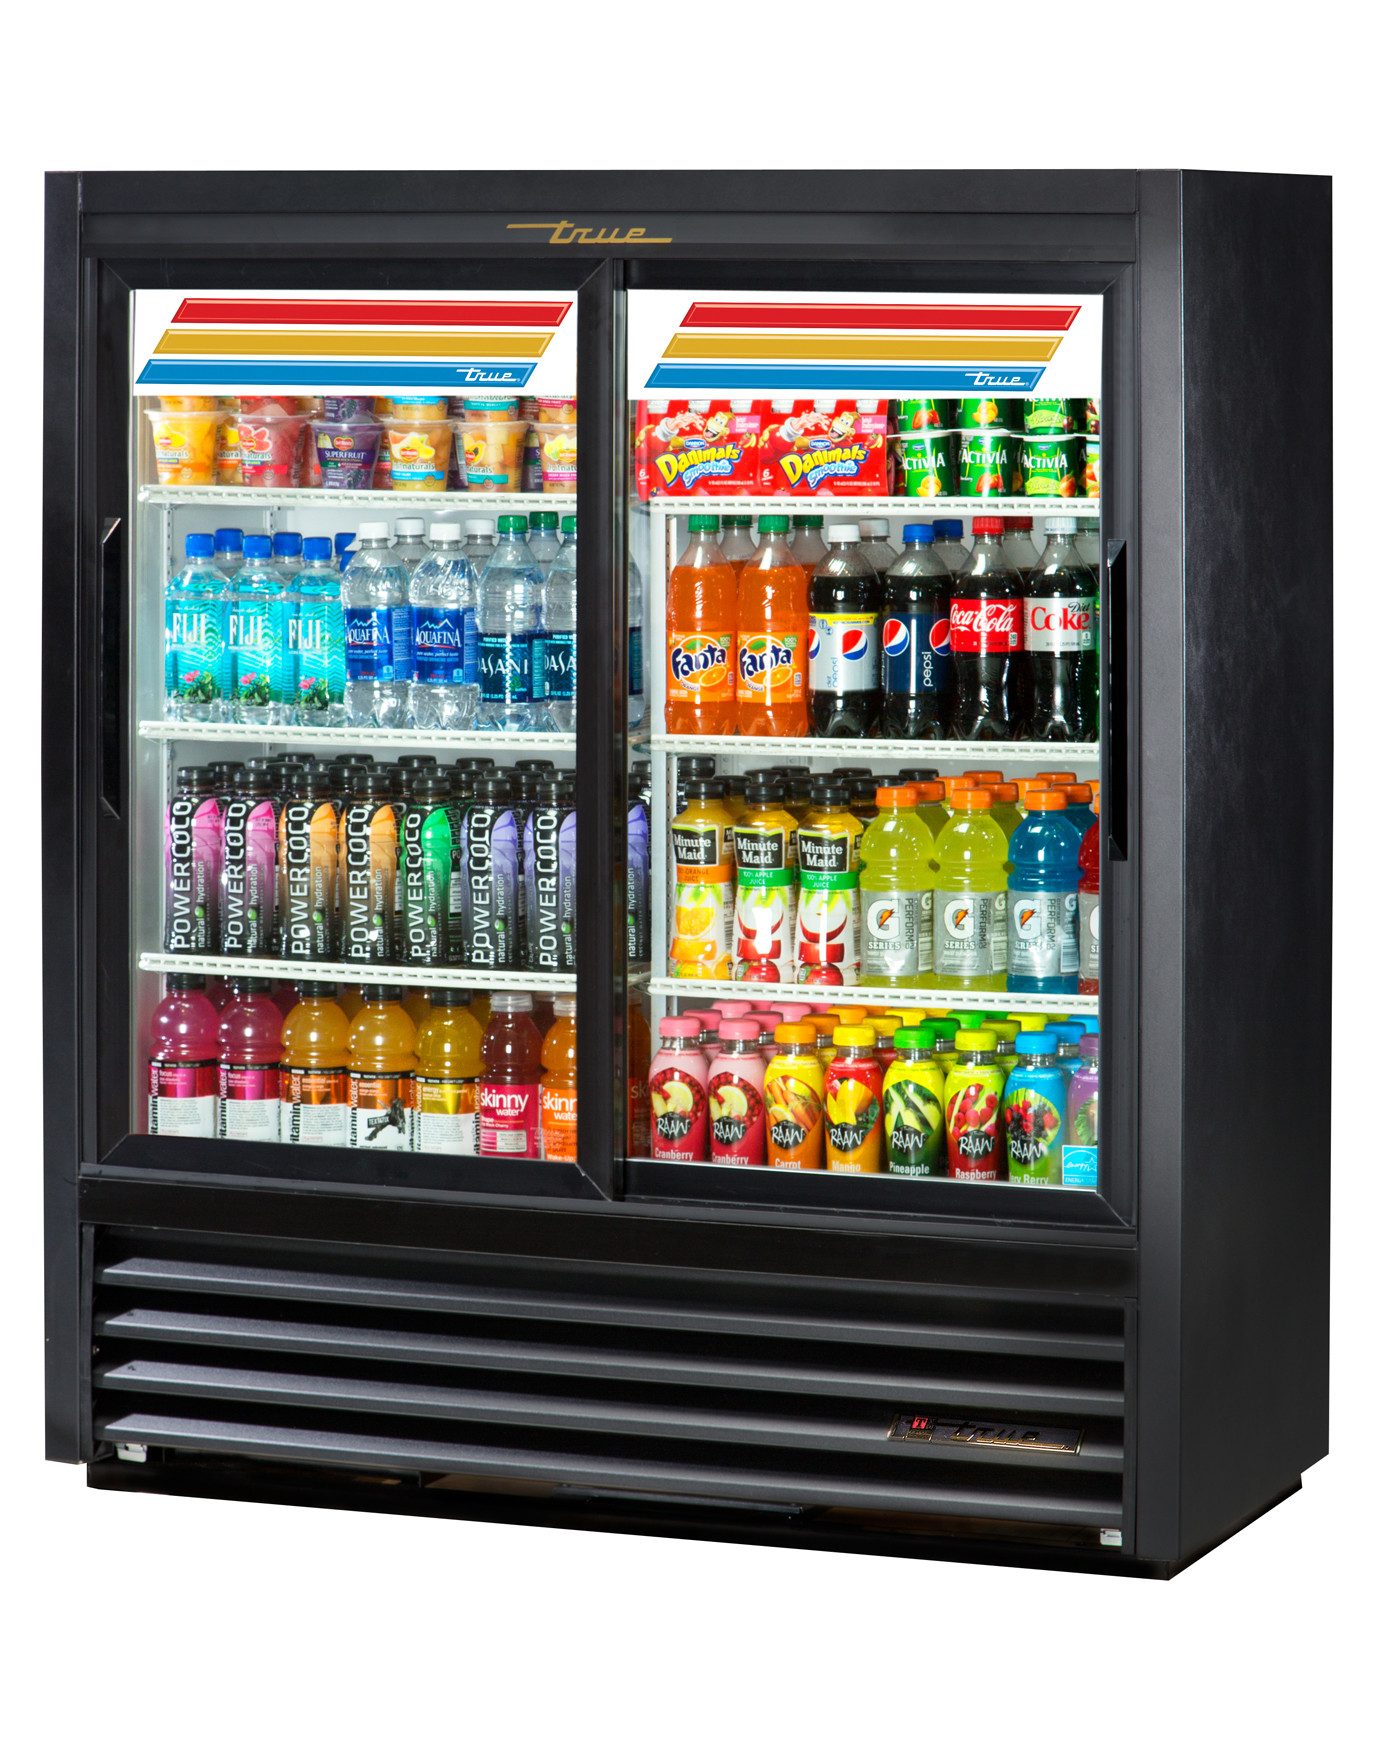 Migali C 23rm Merchandiser Refrigerator W One Glass Swing Door And True Gdm 49 Wiring Diagram 41sl 54 Hc Ld Two Slide Convenience Store